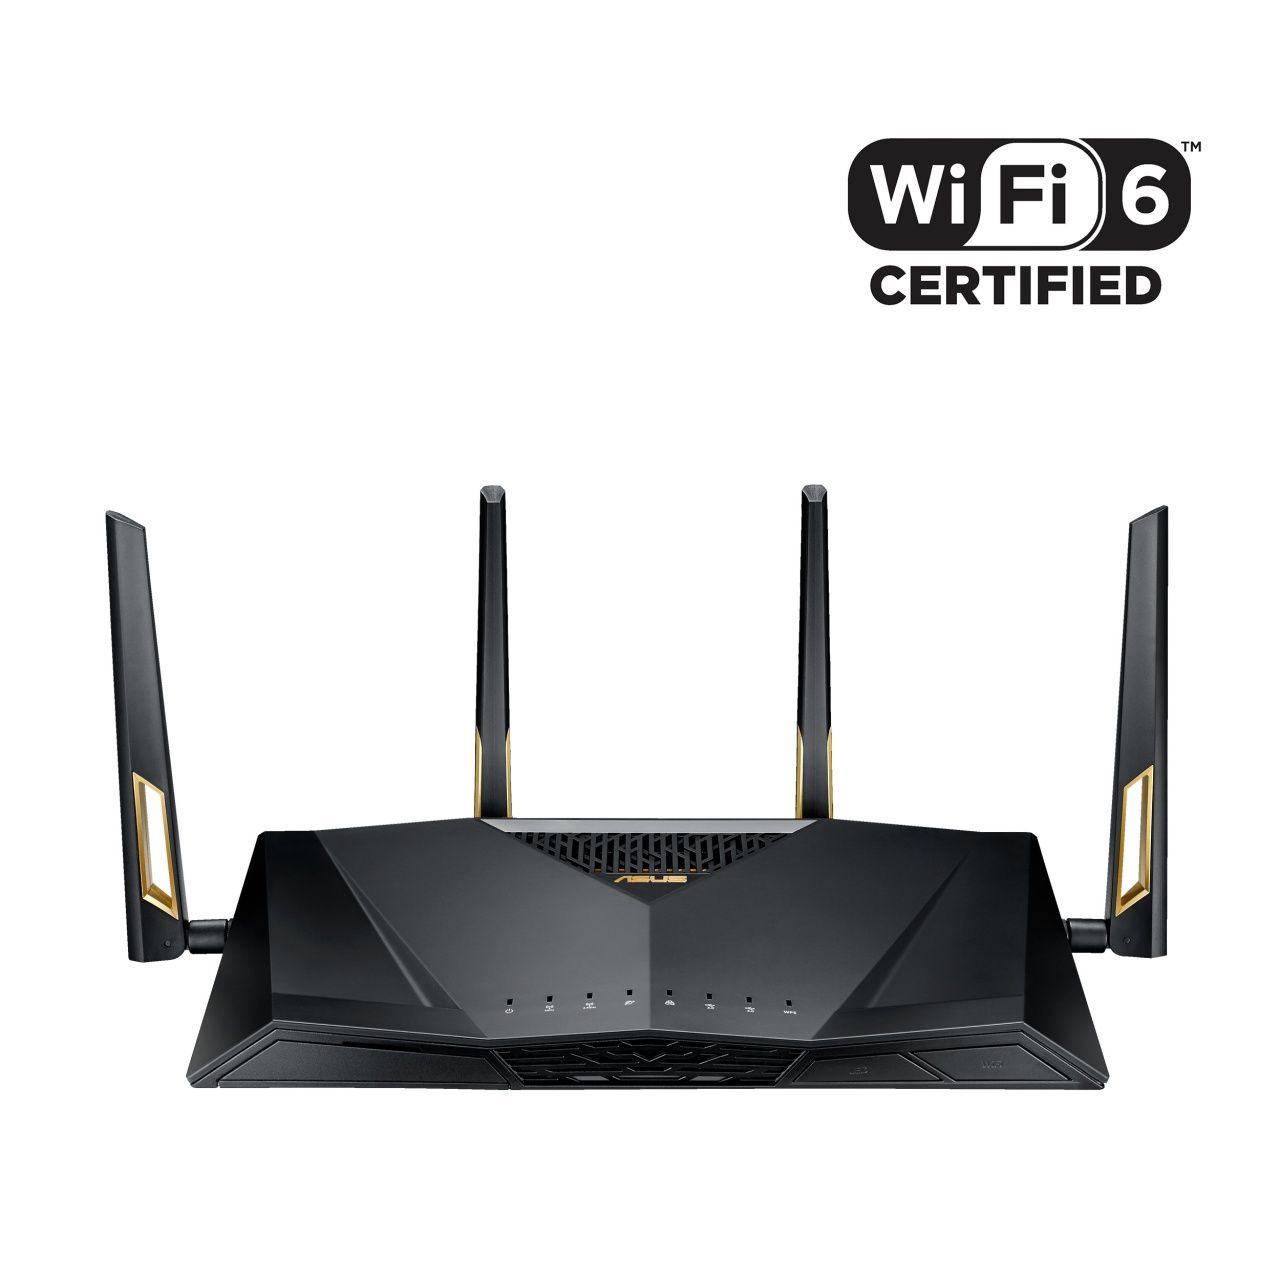 asus rt ax88u with wifi certified 6 logo 1